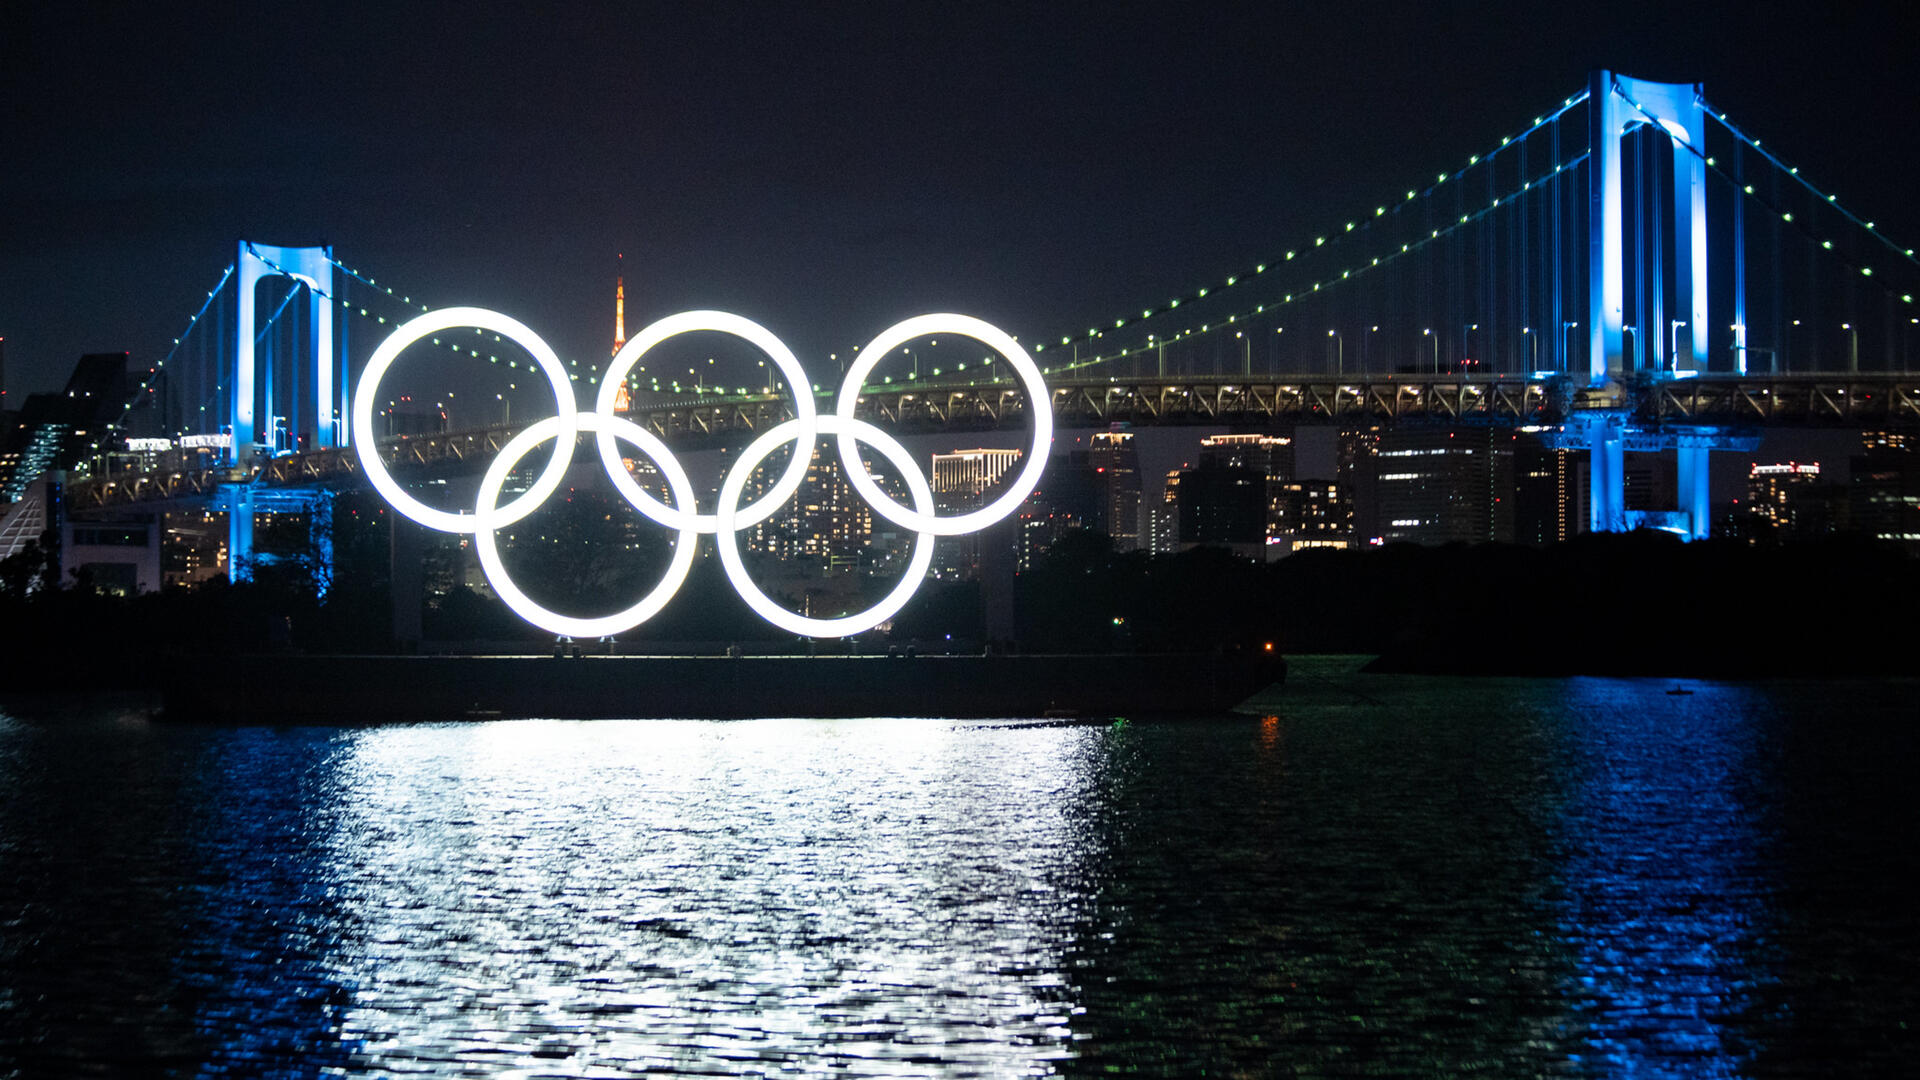 Night view of illumiated Monument of Olympic Rings, set on a barge in Tokyo with a bridge behind it